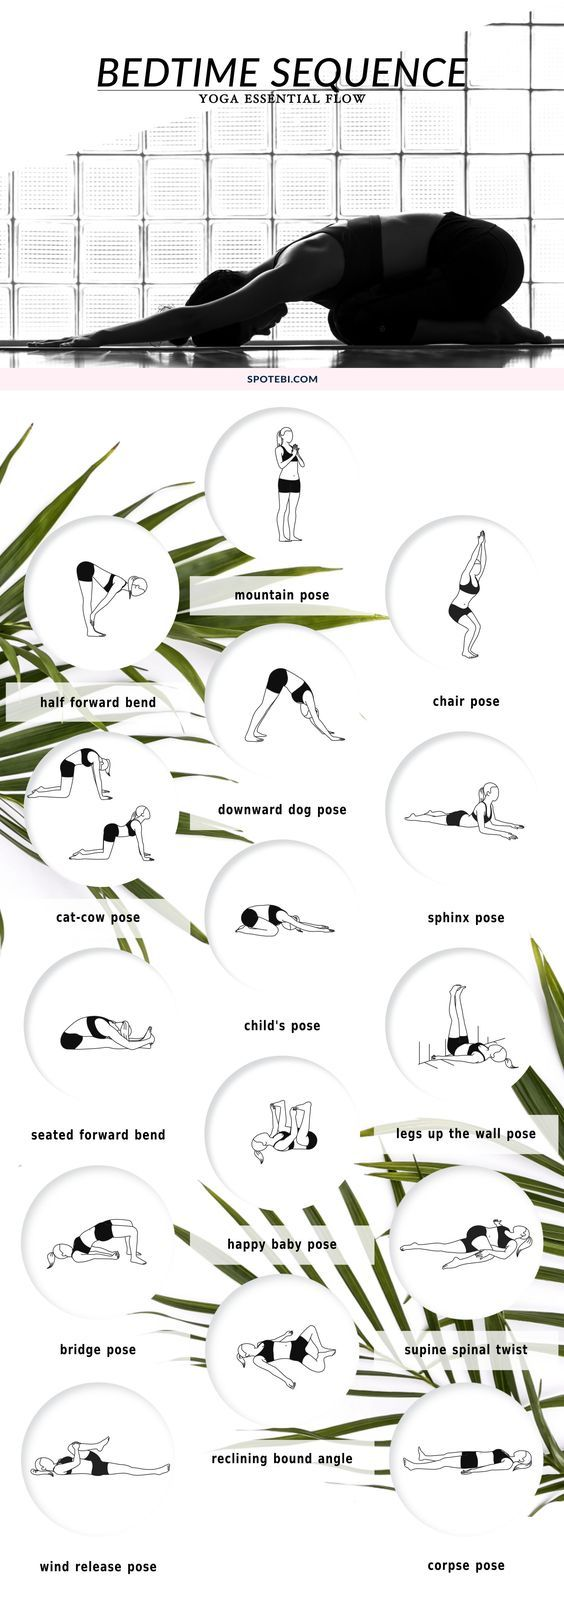 Beat insomnia and boost relaxation with our bedtime essential flow. A 12 minute yoga sequence perfect to soothe your mind and body before bed. Put on your coziest PJs, grab a cup of chamomile tea and unwind! http://www.spotebi.com/yoga-sequences/bedtime-s